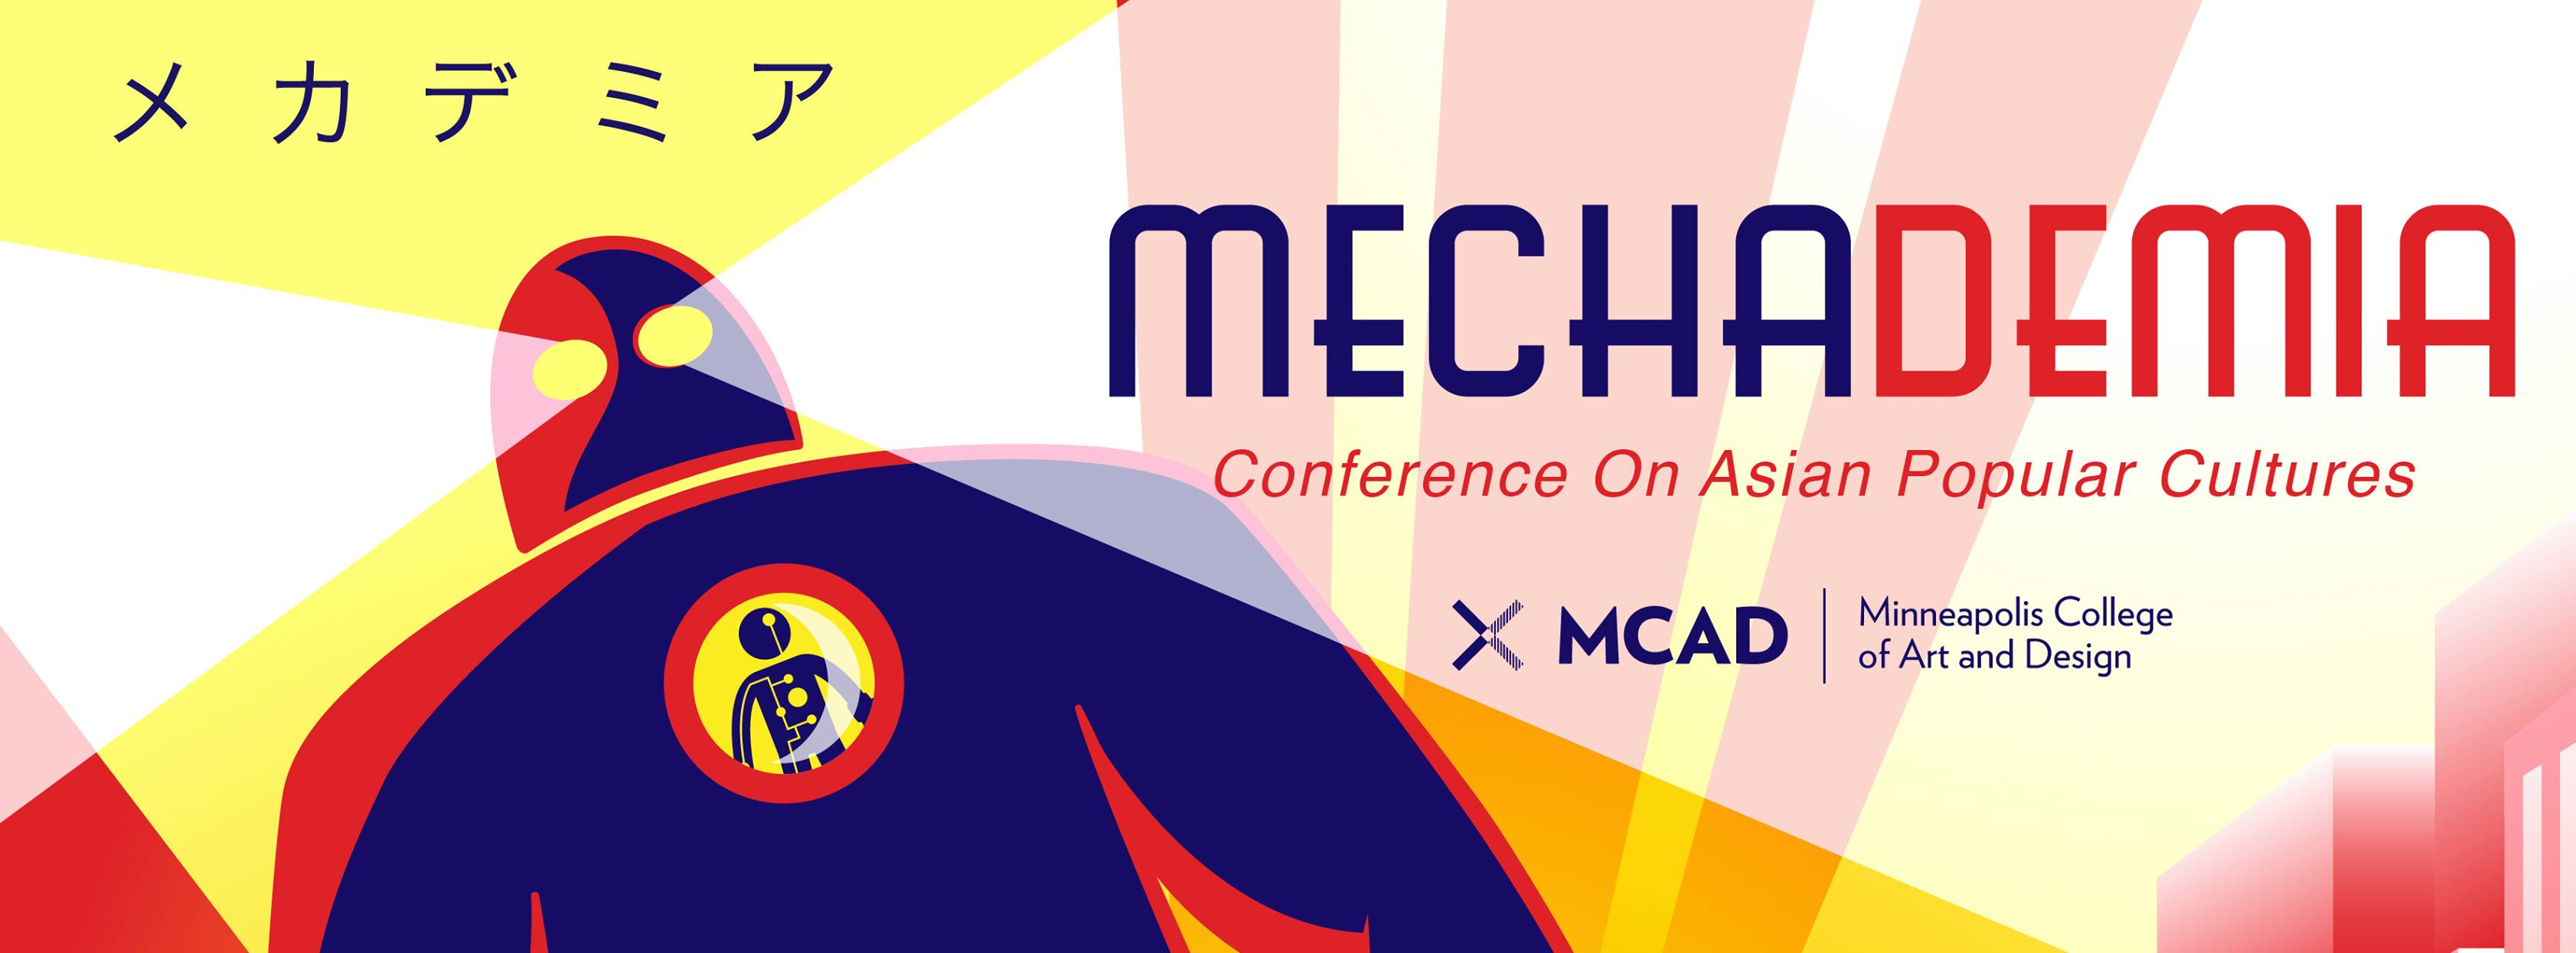 Lessons Learned from Mechademia 2016